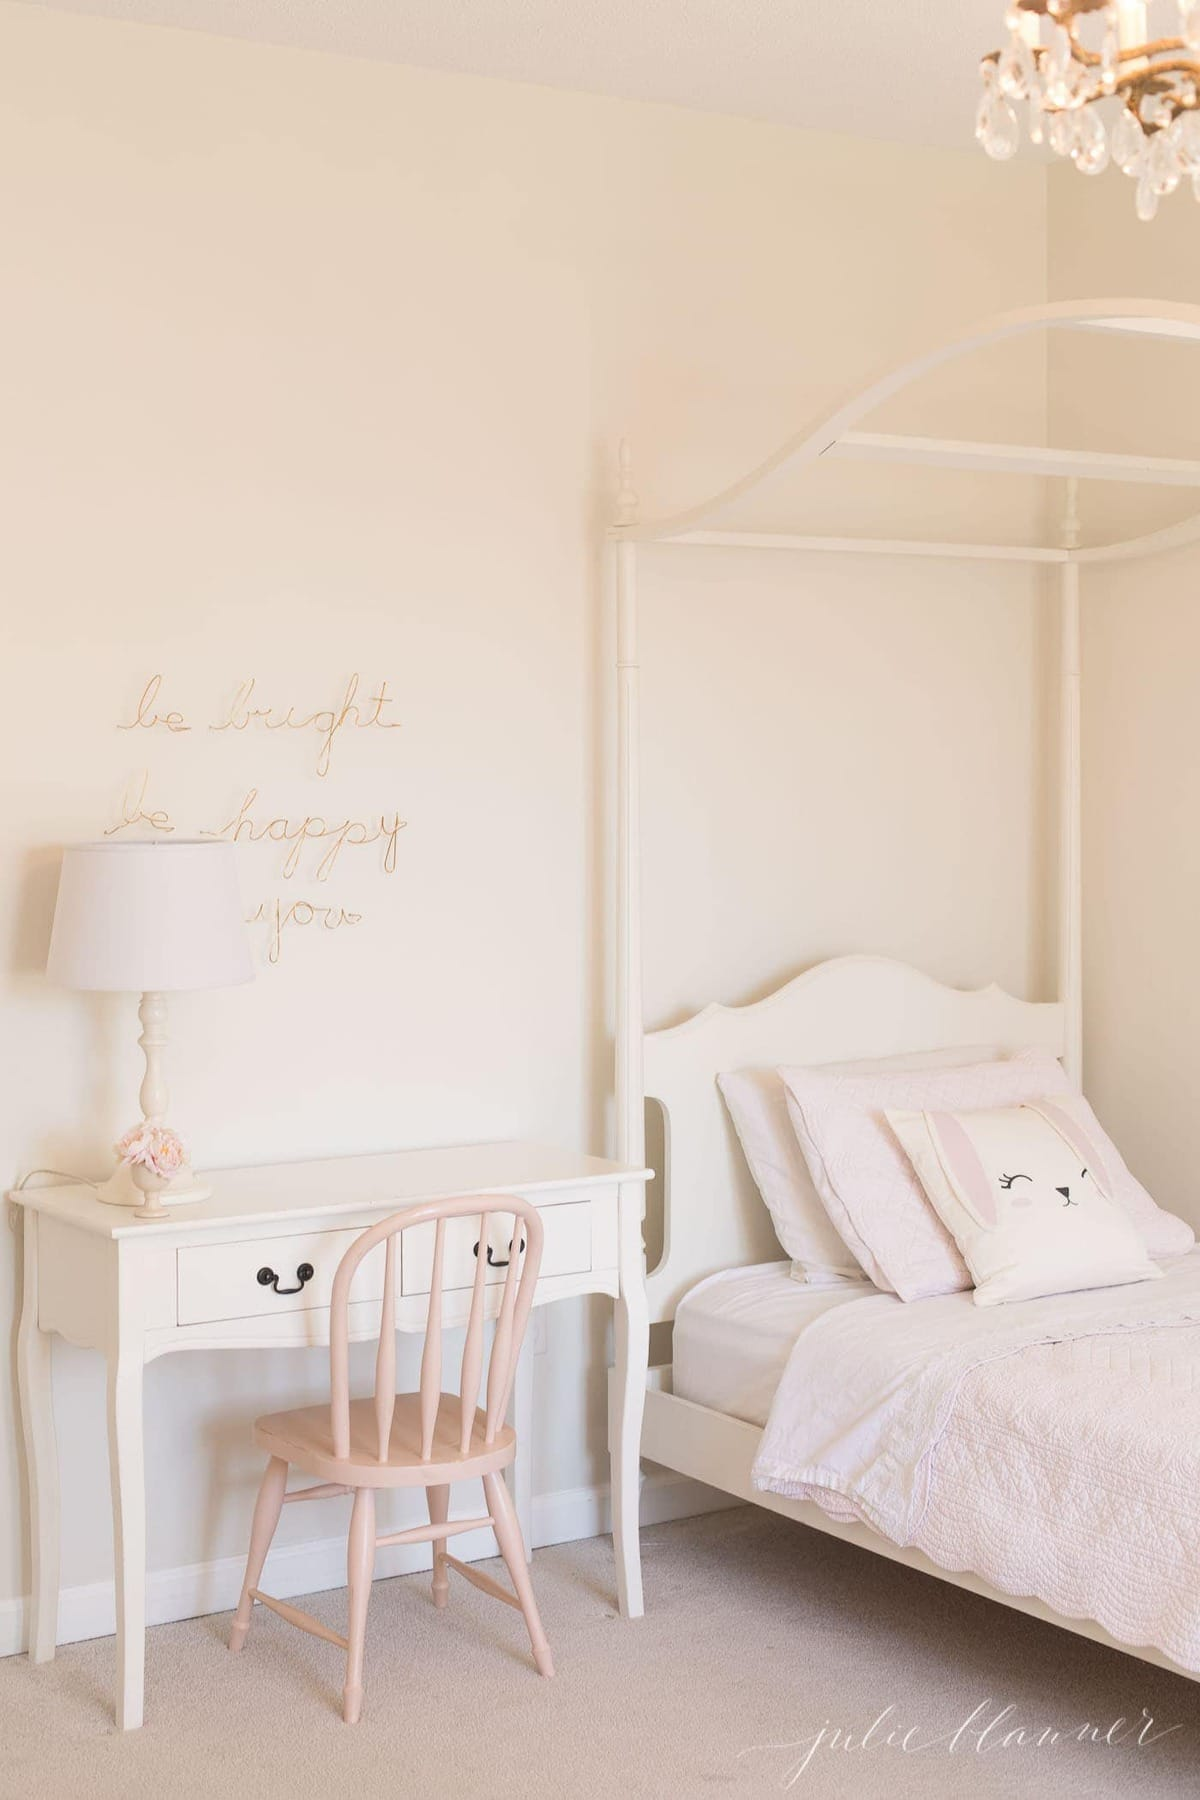 A little girl's bedroom with a white desk and white bed, white walls and trim paint.